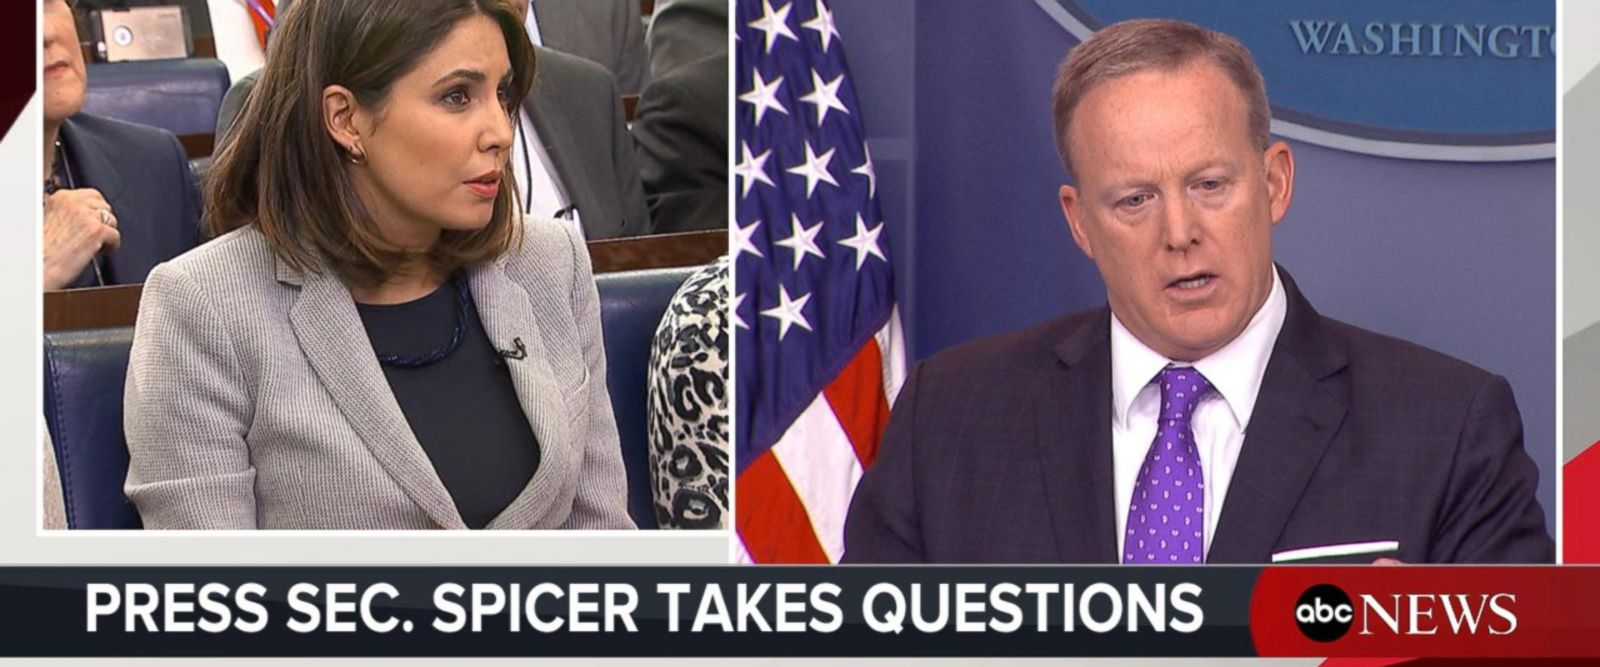 VIDEO: Press secretary comments on tax plan's effect on middle class